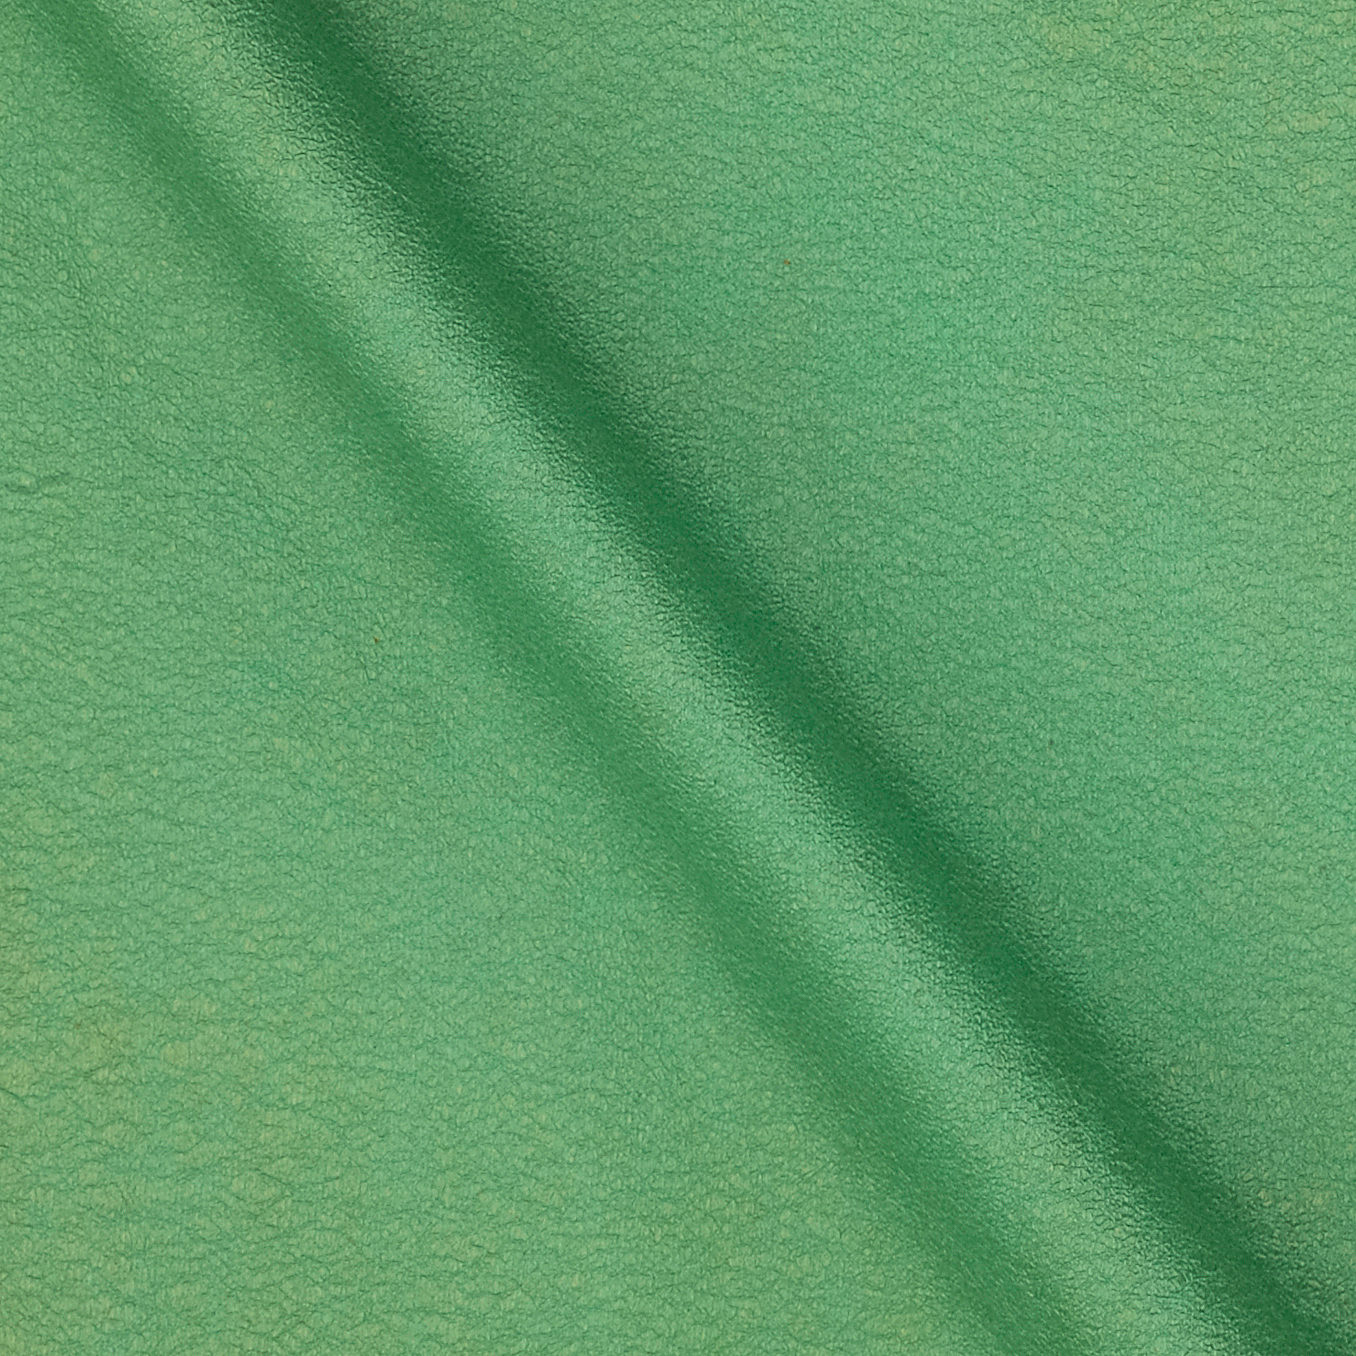 Versace Faux Leather Green Fabric